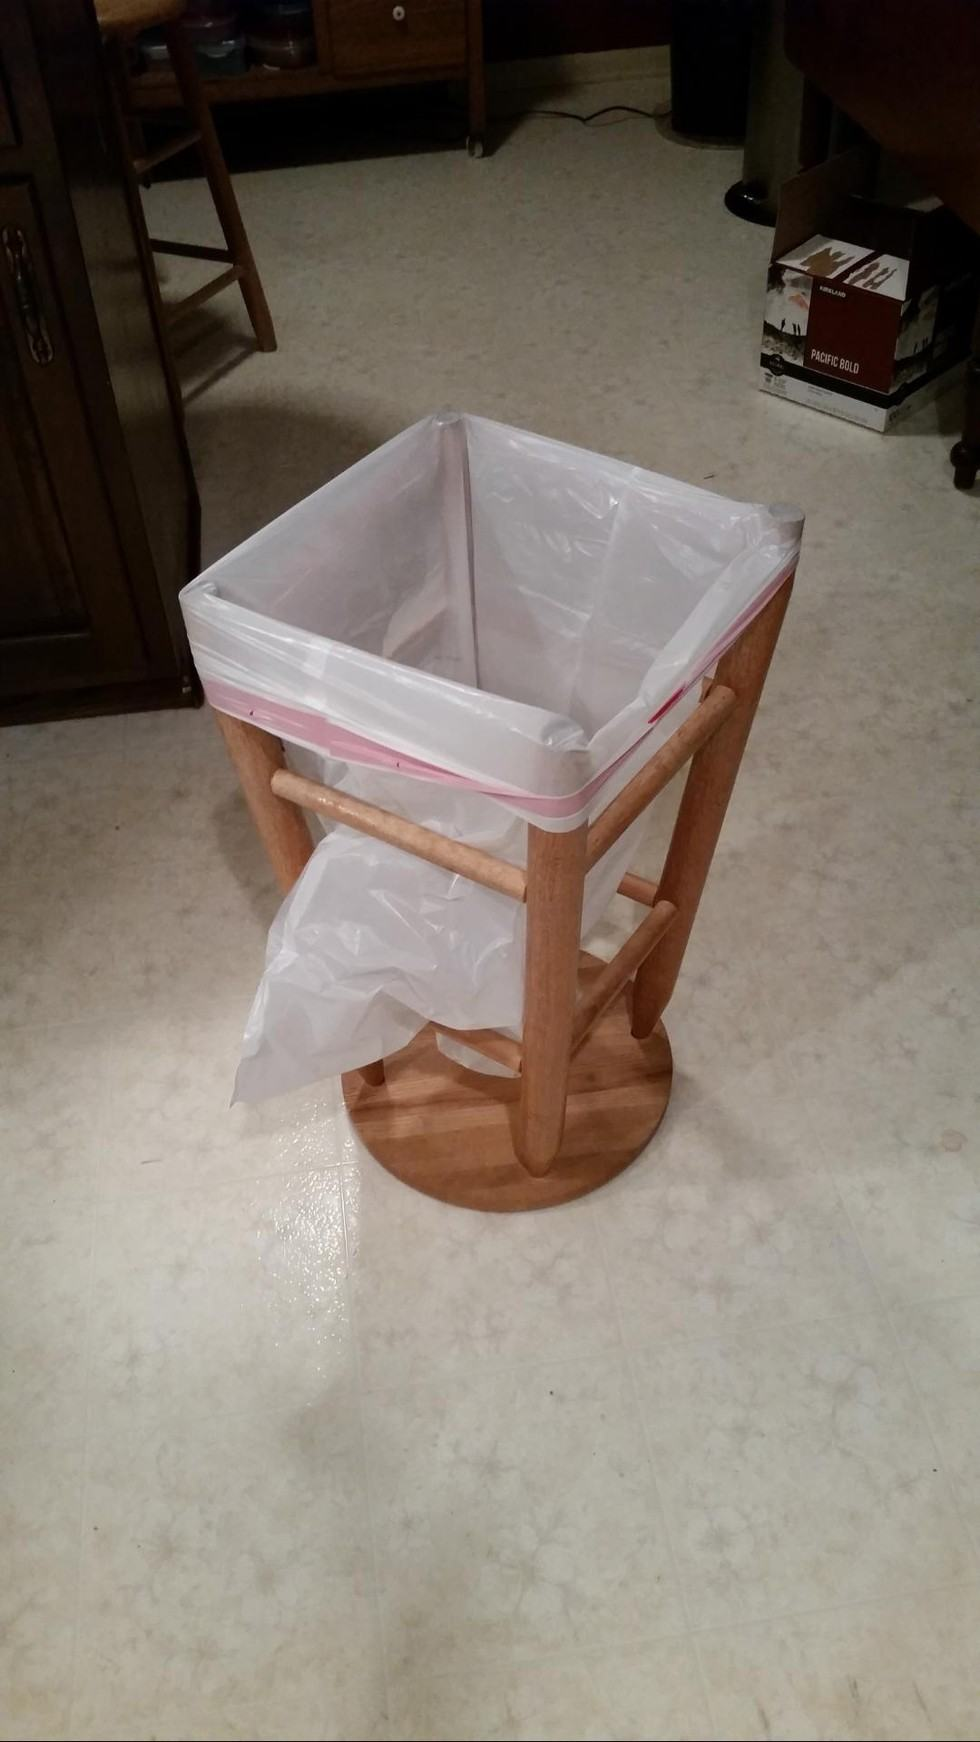 Stool Garbage Can bag